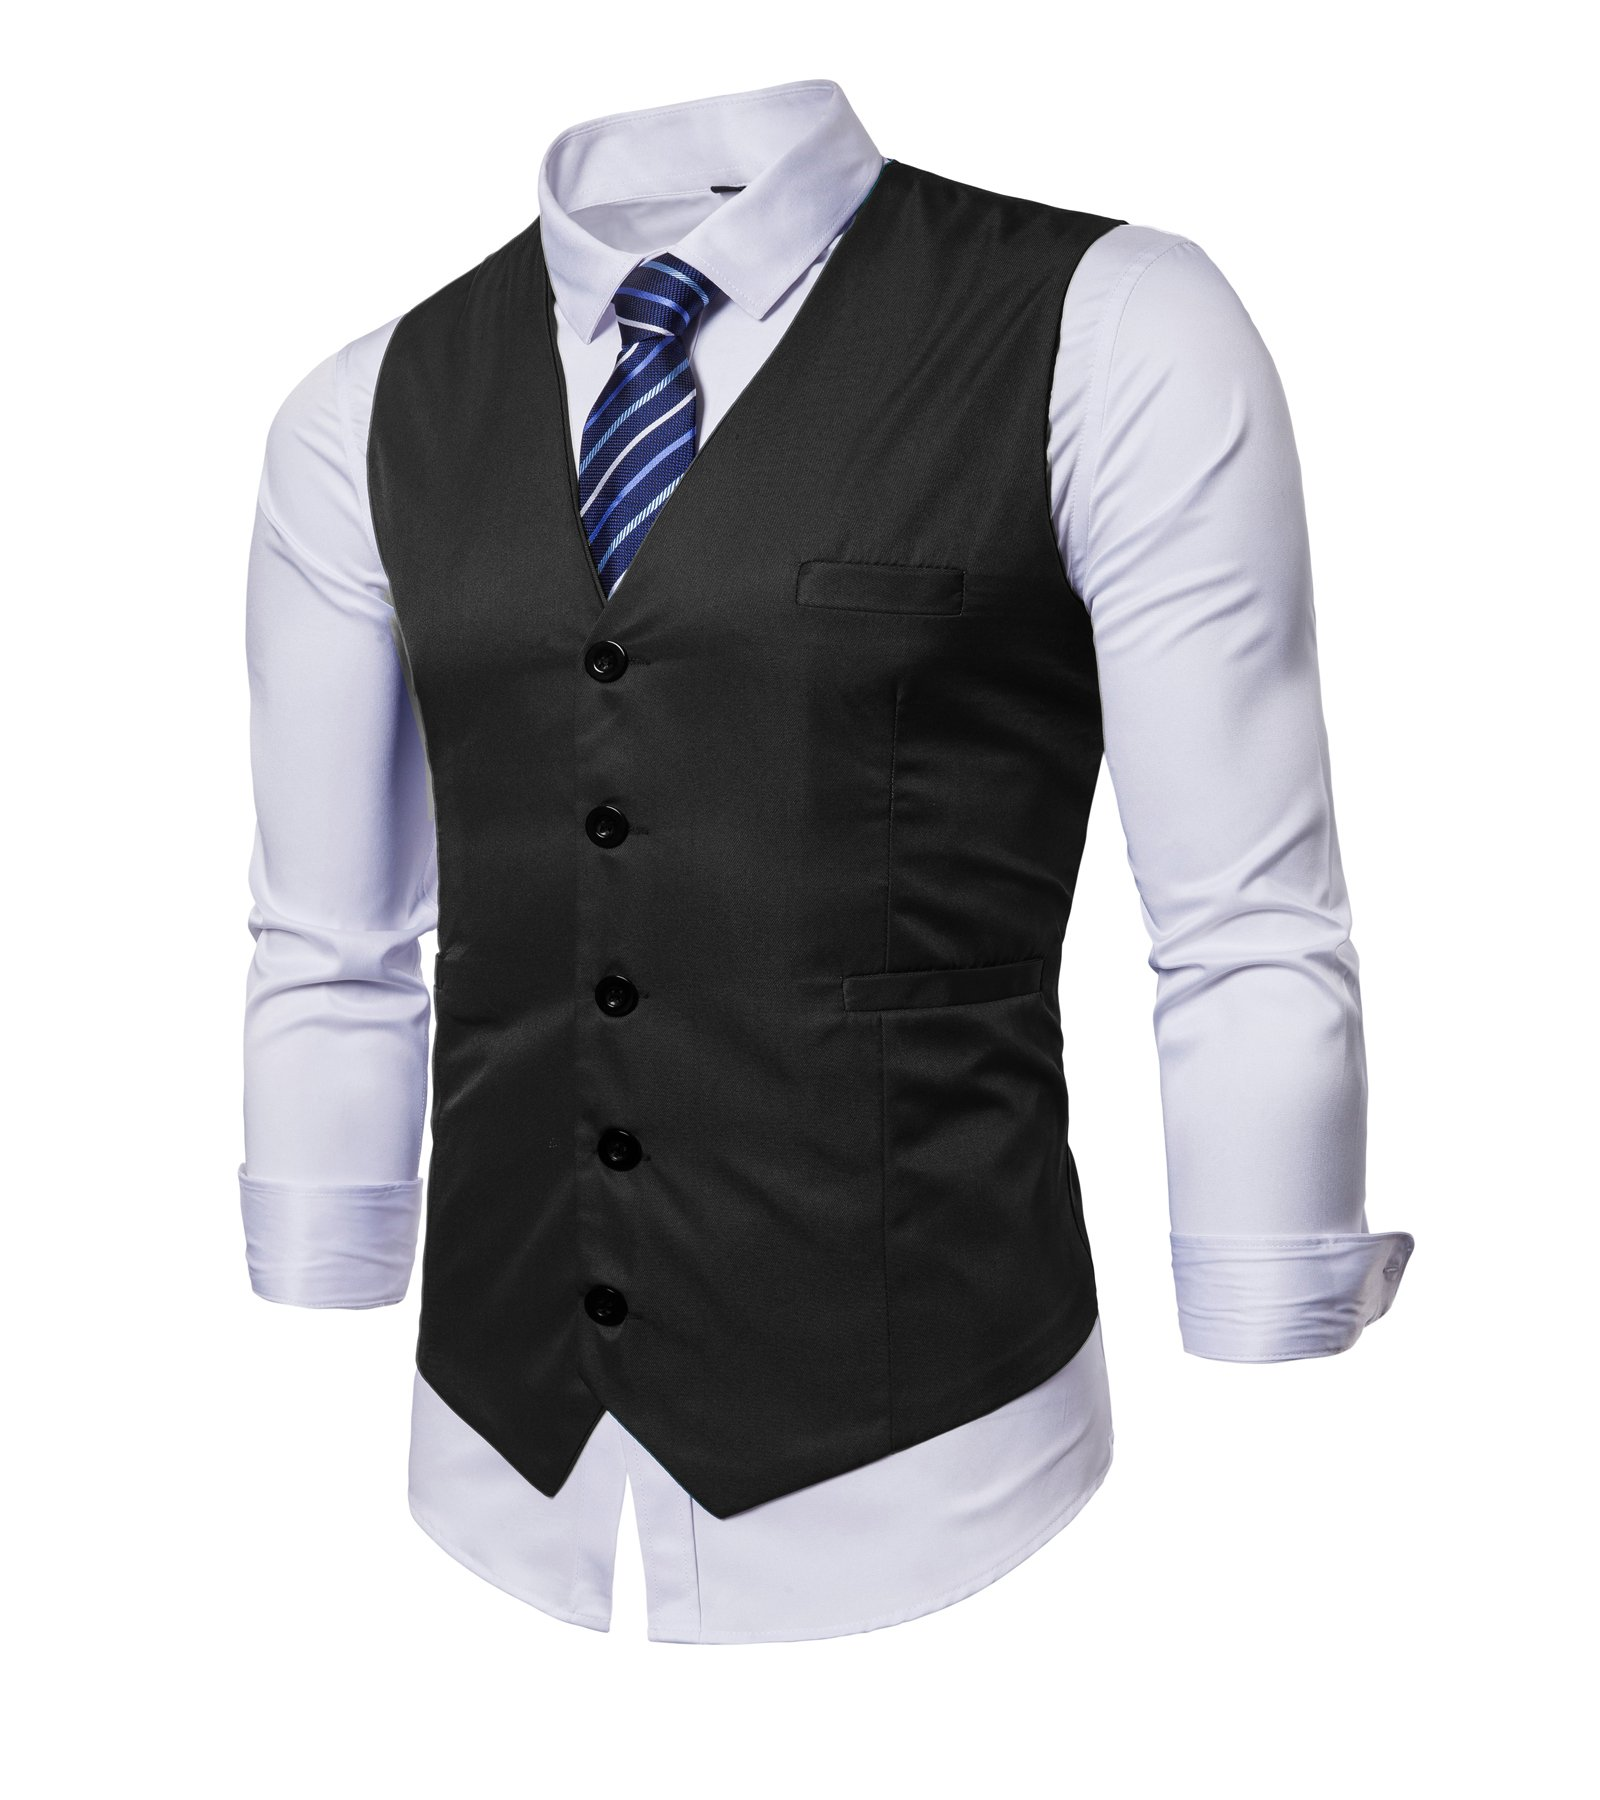 AOYOG Men's Business Suit Vests Waistcoat Slim Fit for Suit Or Tuxedo, Black, X-Large